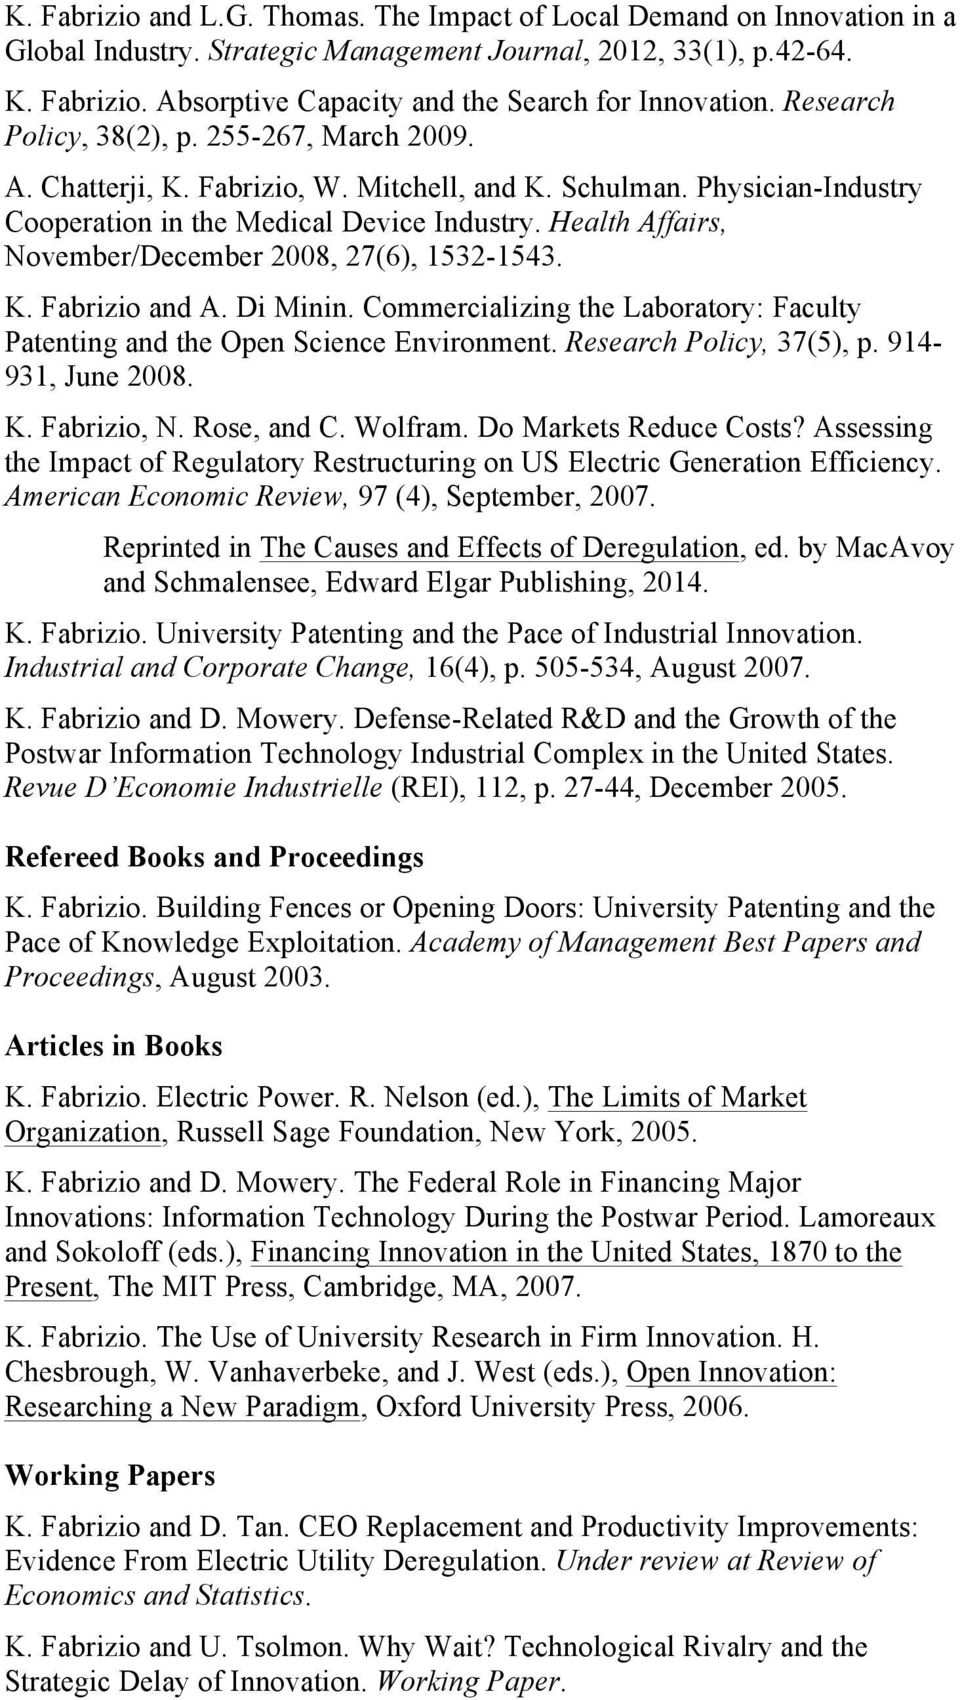 Health Affairs, November/December 2008, 27(6), 1532-1543. K. Fabrizio and A. Di Minin. Commercializing the Laboratory: Faculty Patenting and the Open Science Environment. Research Policy, 37(5), p.